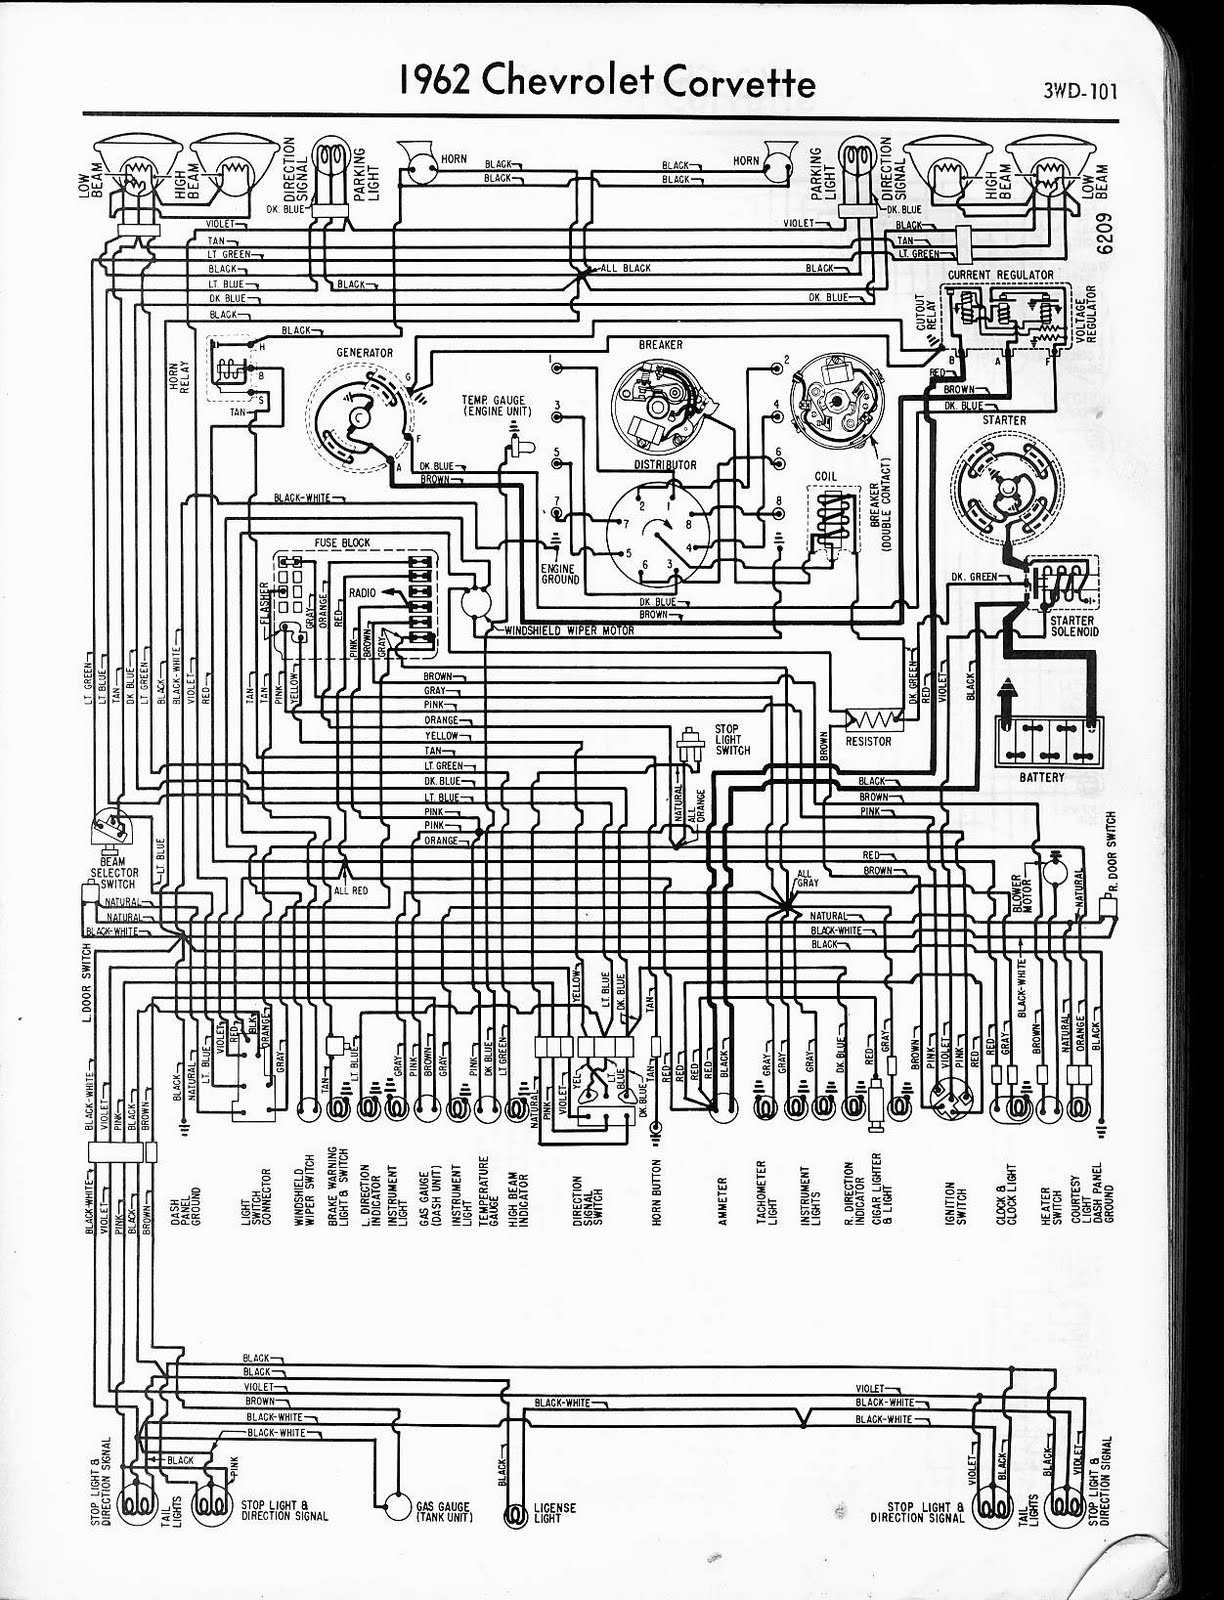 Fiat Wiring Diagram Download Schematic 2019 Panda Diagrams Free Auto 1962 Chevrolet Corvette